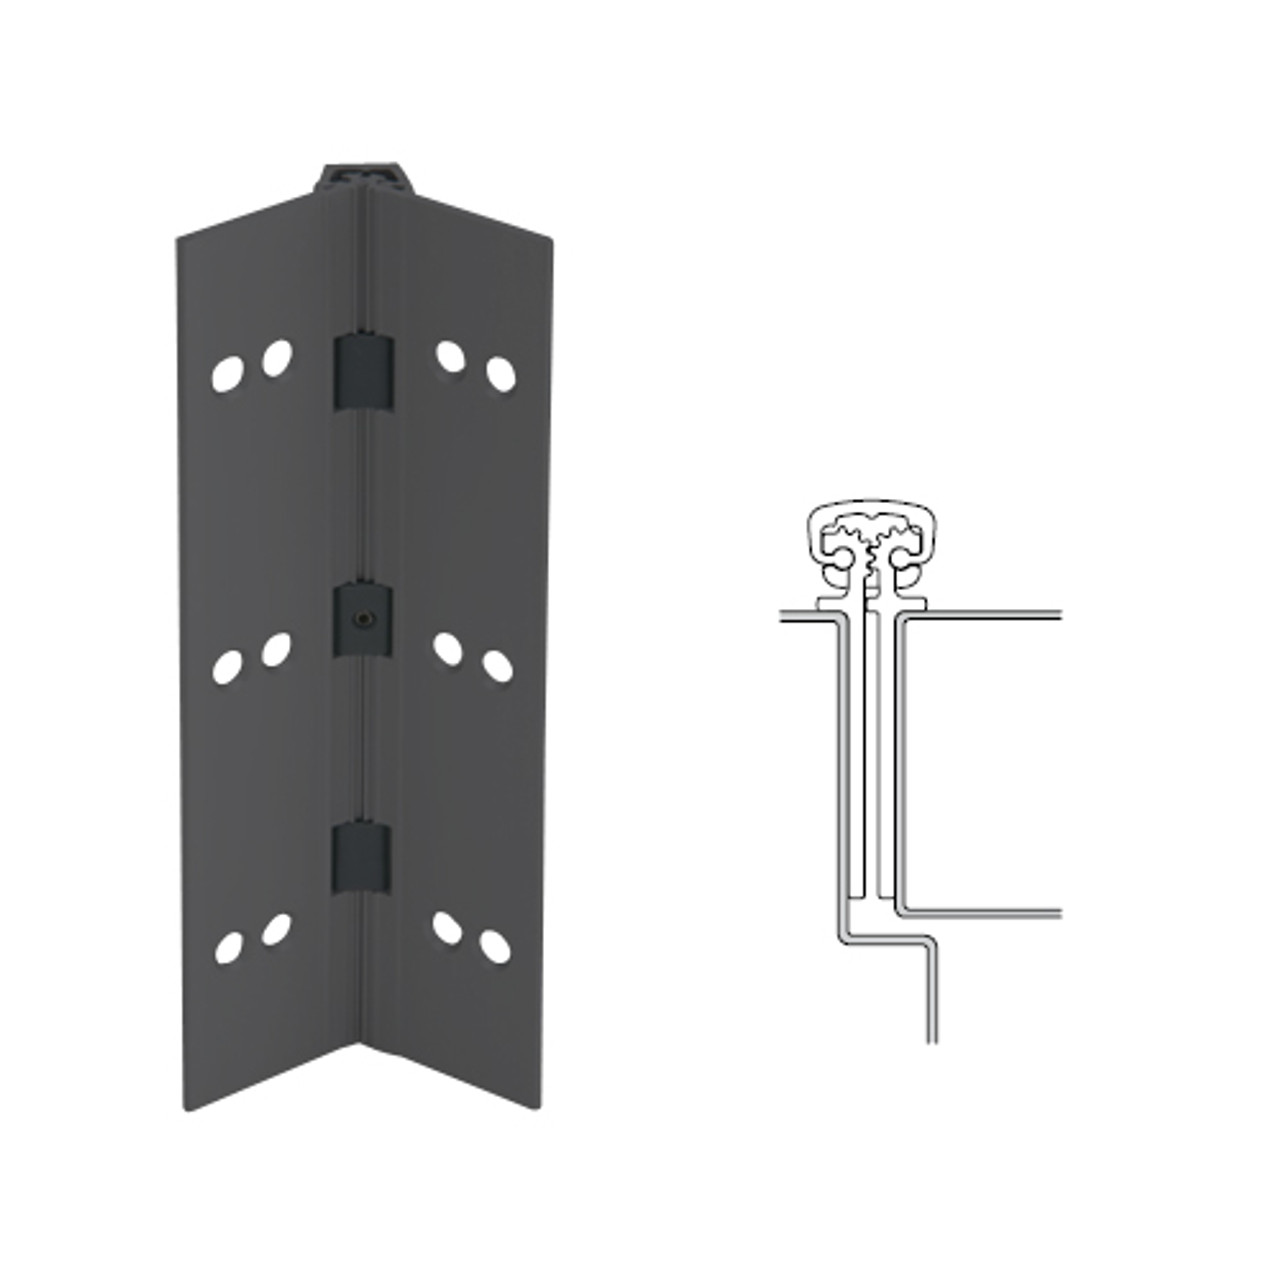 027XY-315AN-83-SECHM IVES Full Mortise Continuous Geared Hinges with Security Screws - Hex Pin Drive in Anodized Black